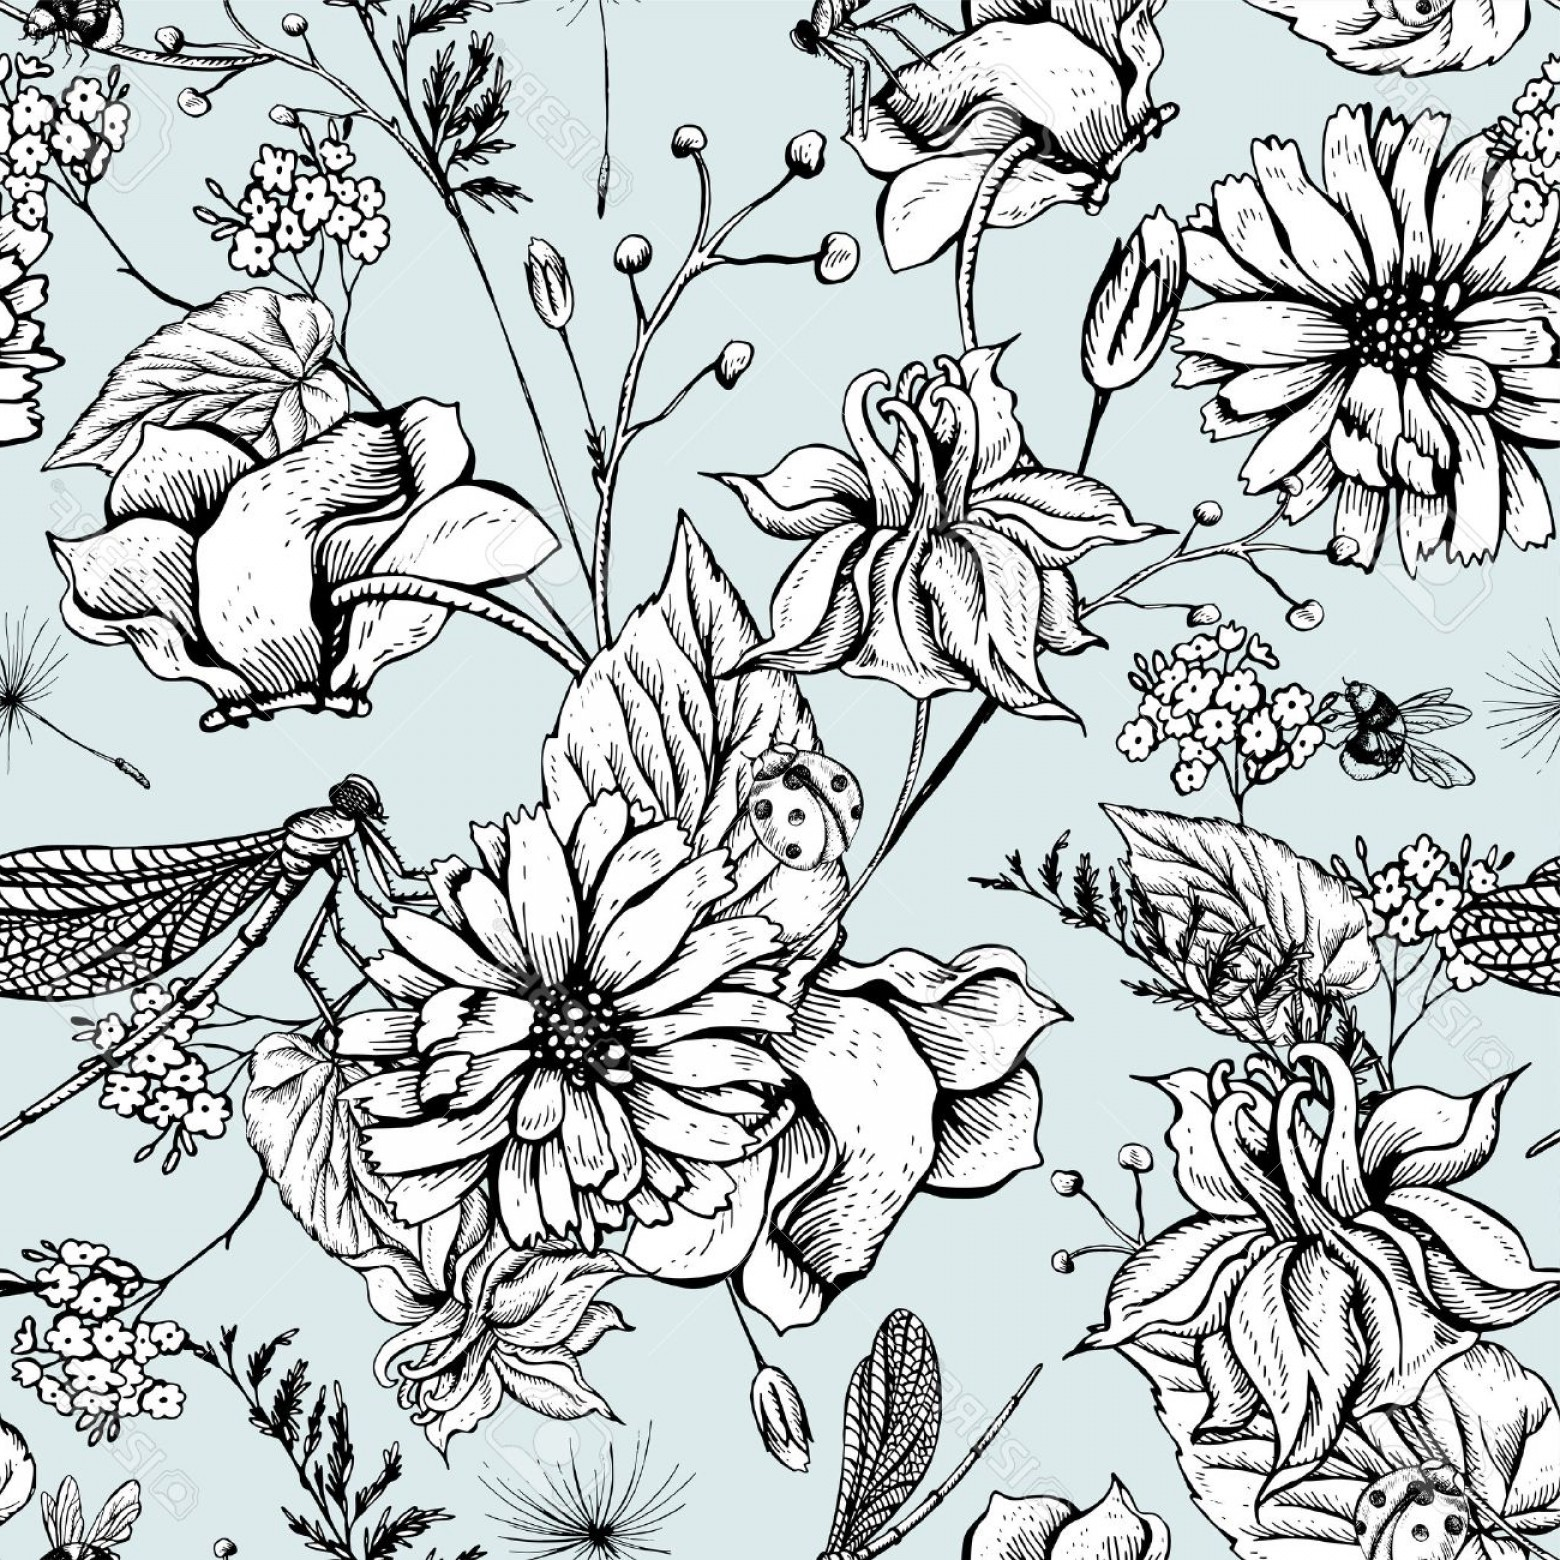 Botanical Flower Vectors: Photostock Vector Vintage Monochrome Garden Flowers Vector Seamless Pattern Botanical Shabby Chic Illustration Wild Fl